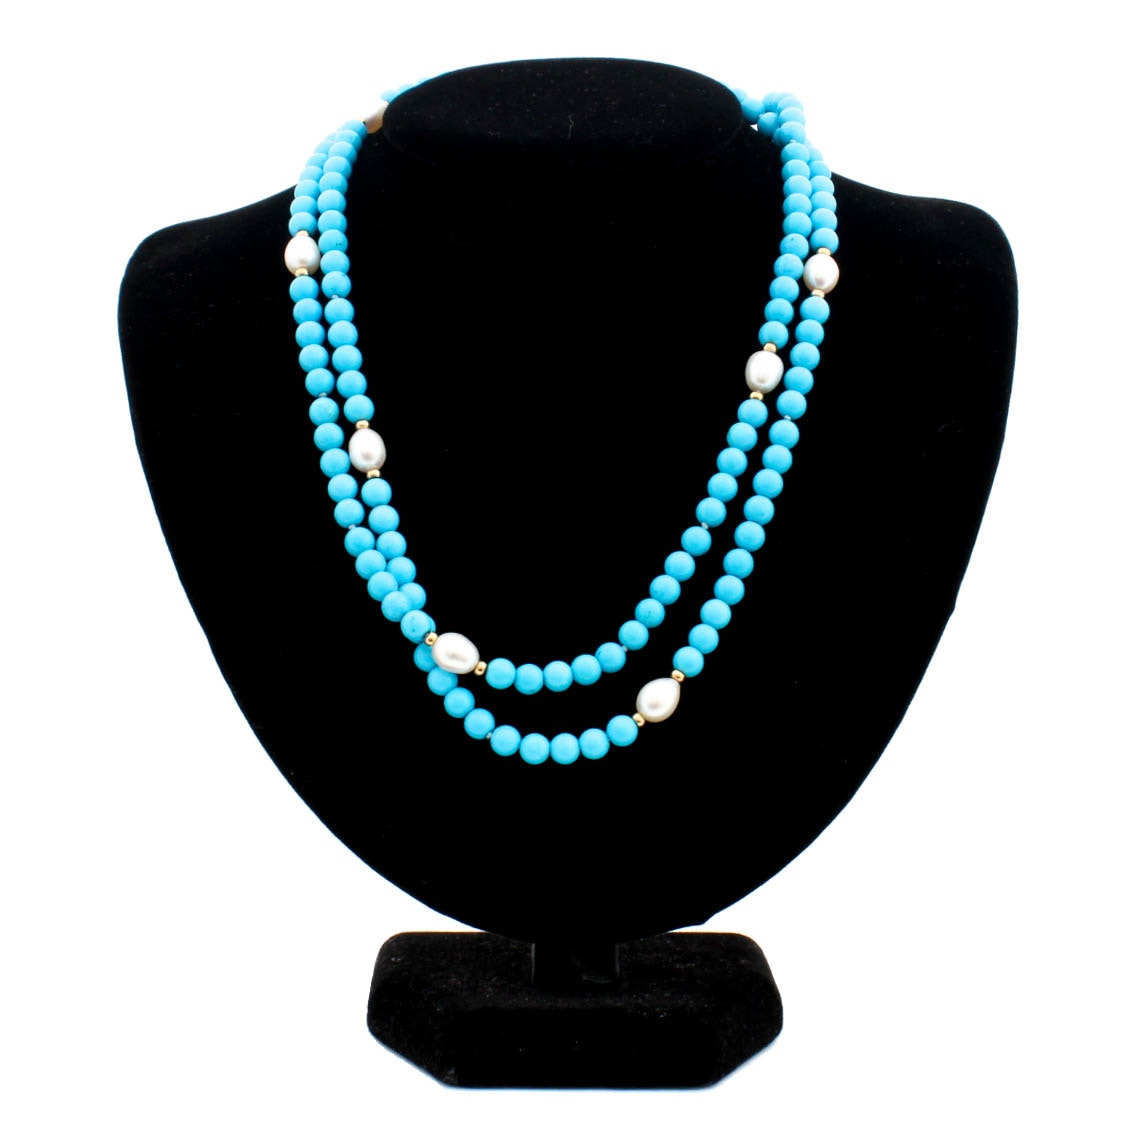 14K Yellow Gold Cultured Pearl and Dyed Turquoise Necklace